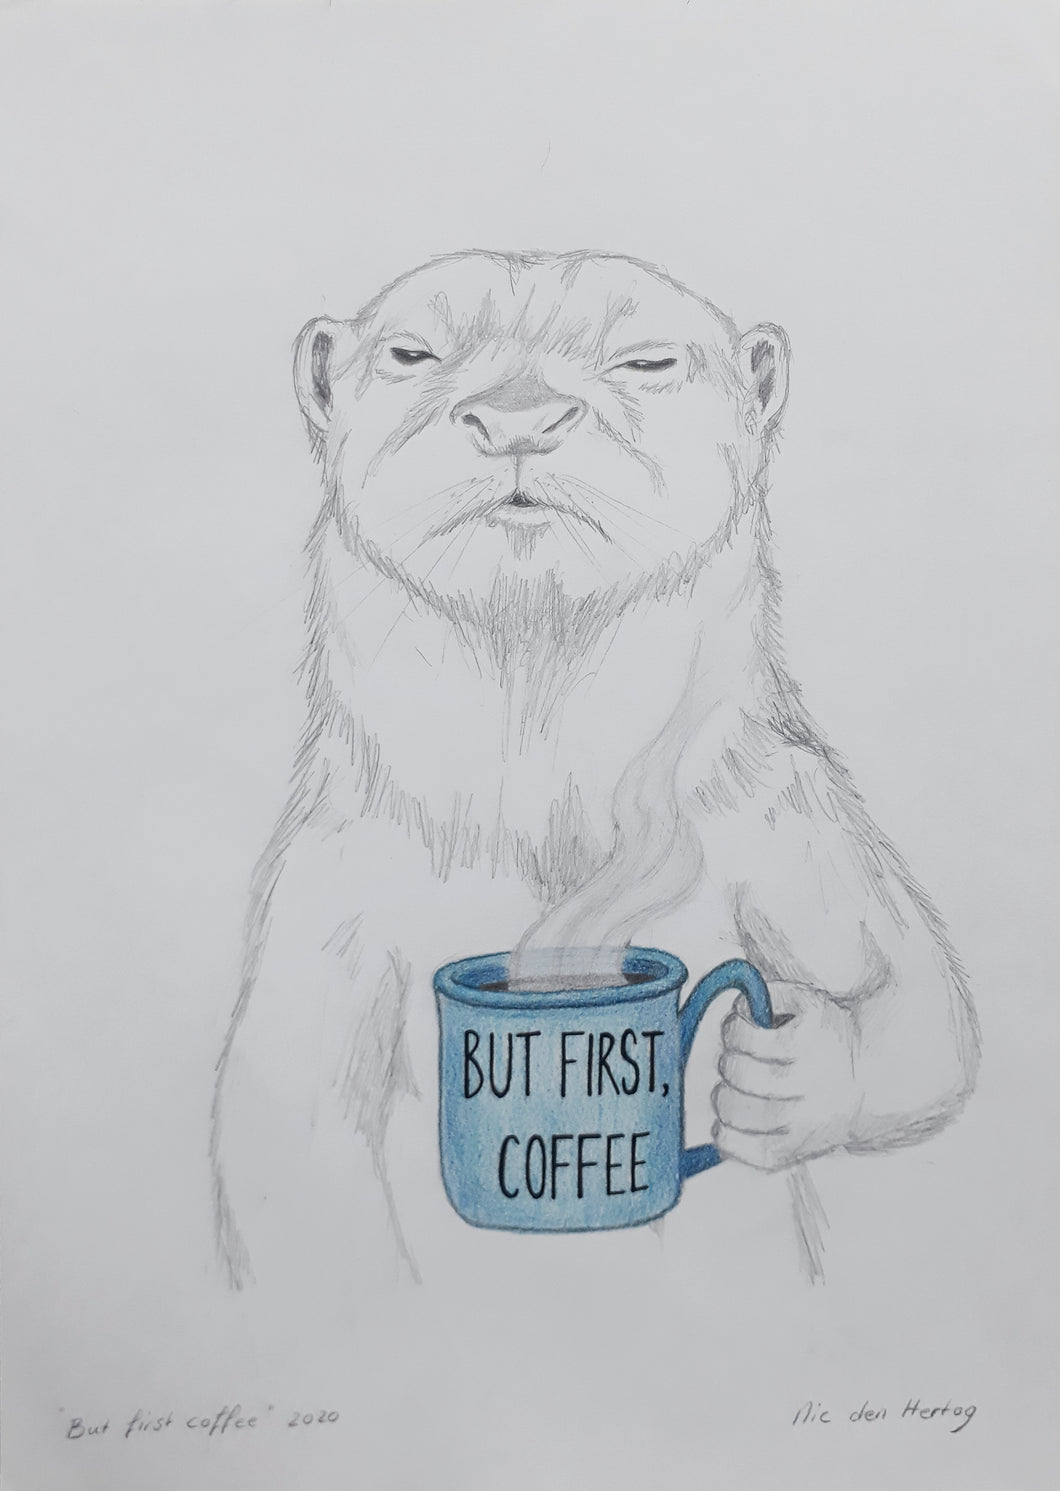 But first coffee original